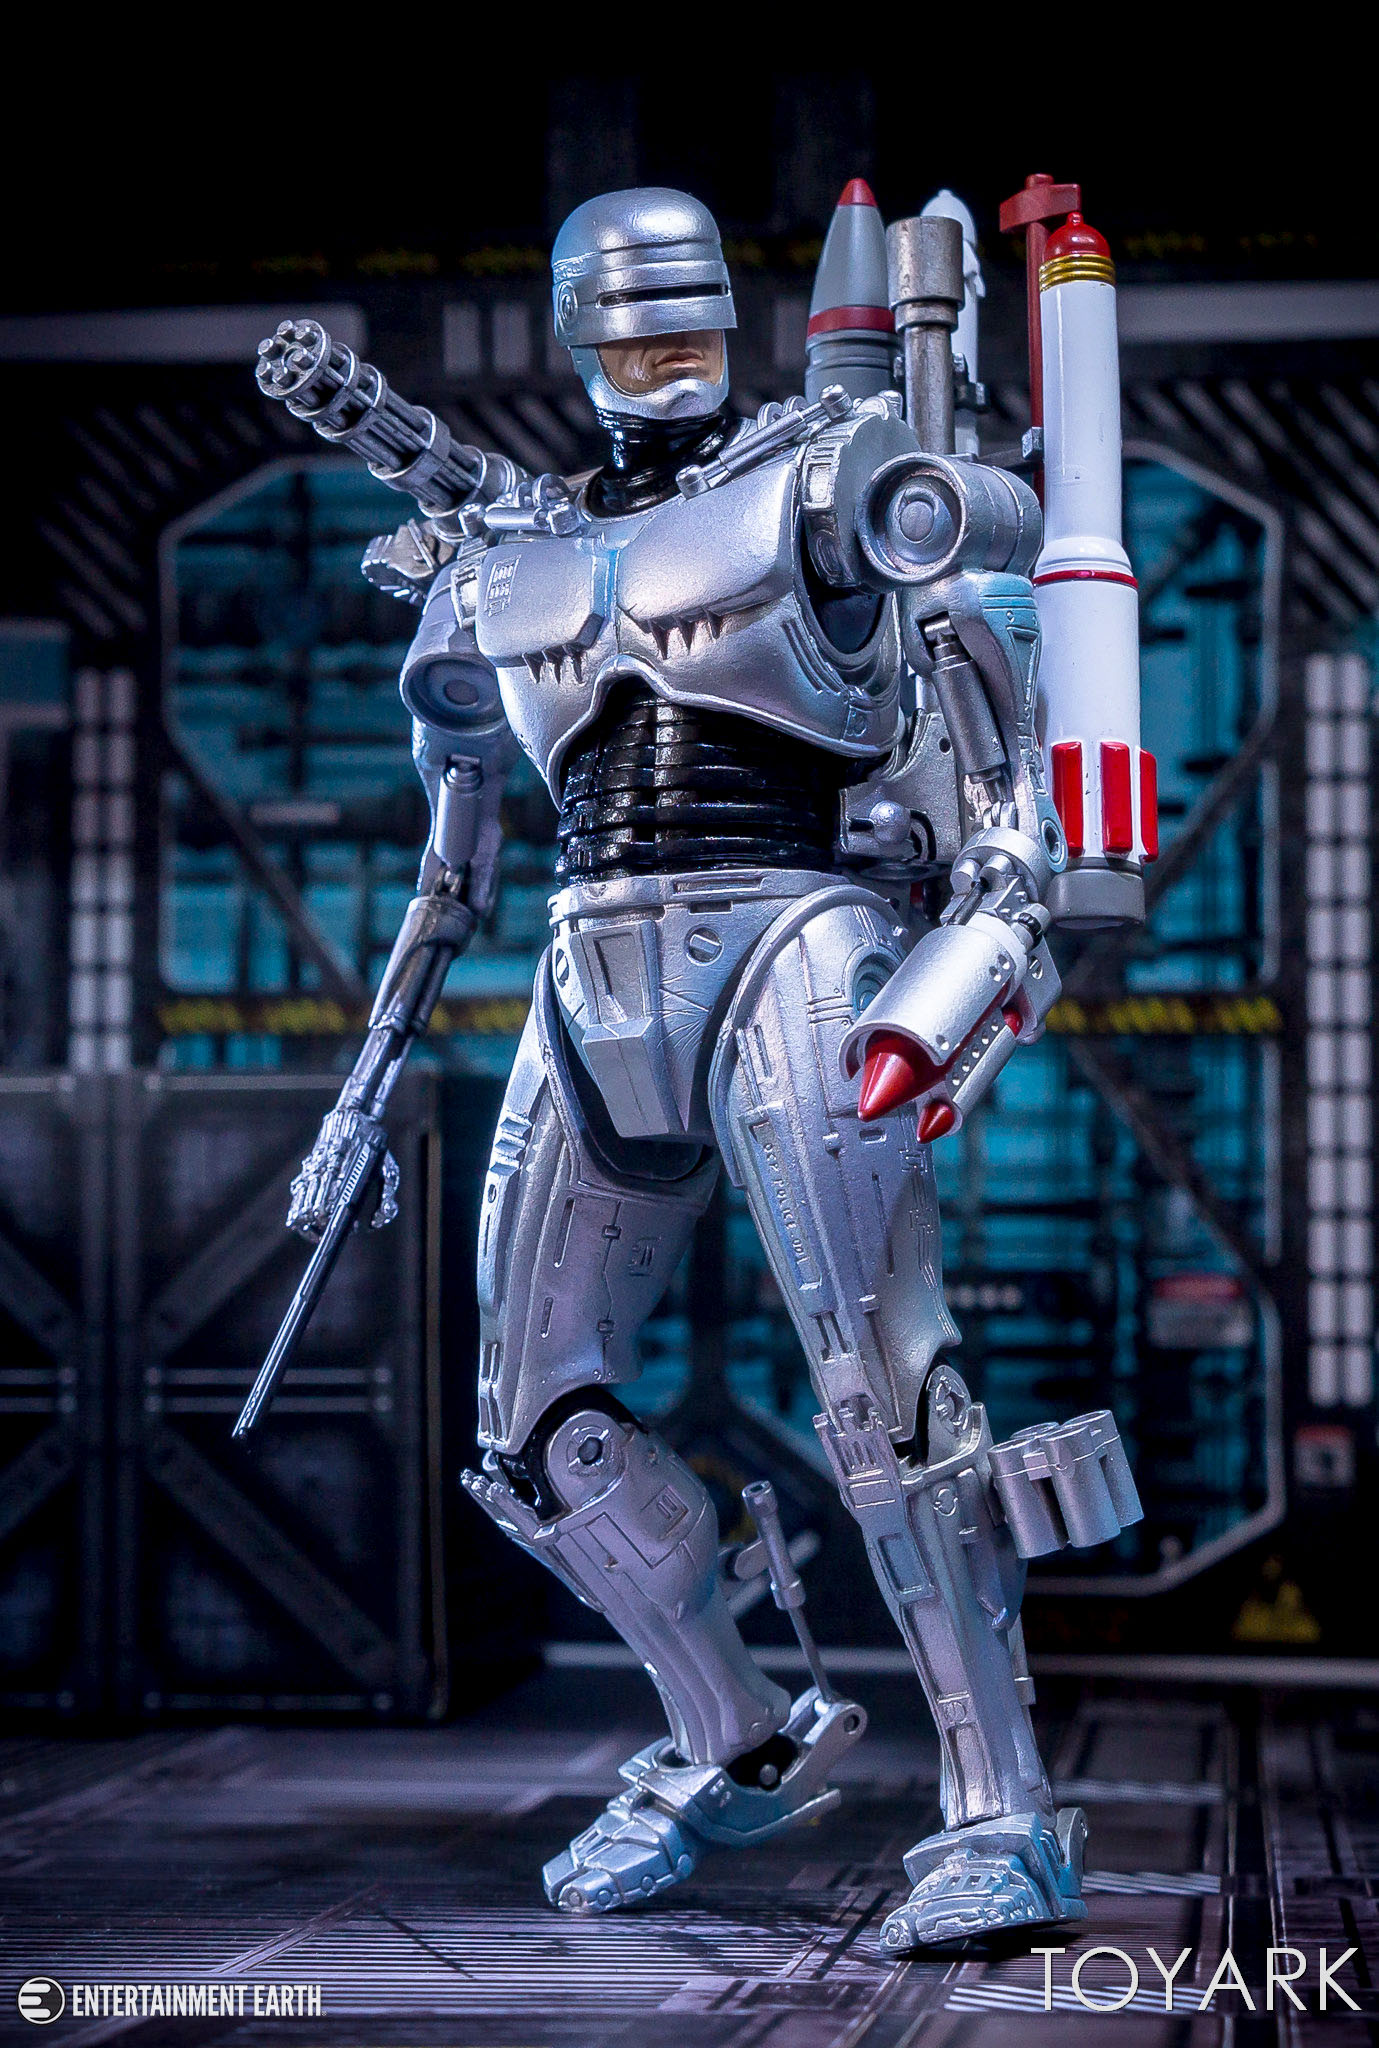 http://news.toyark.com/wp-content/uploads/sites/4/2018/02/NECA-Ult-Future-Robocop-035.jpg